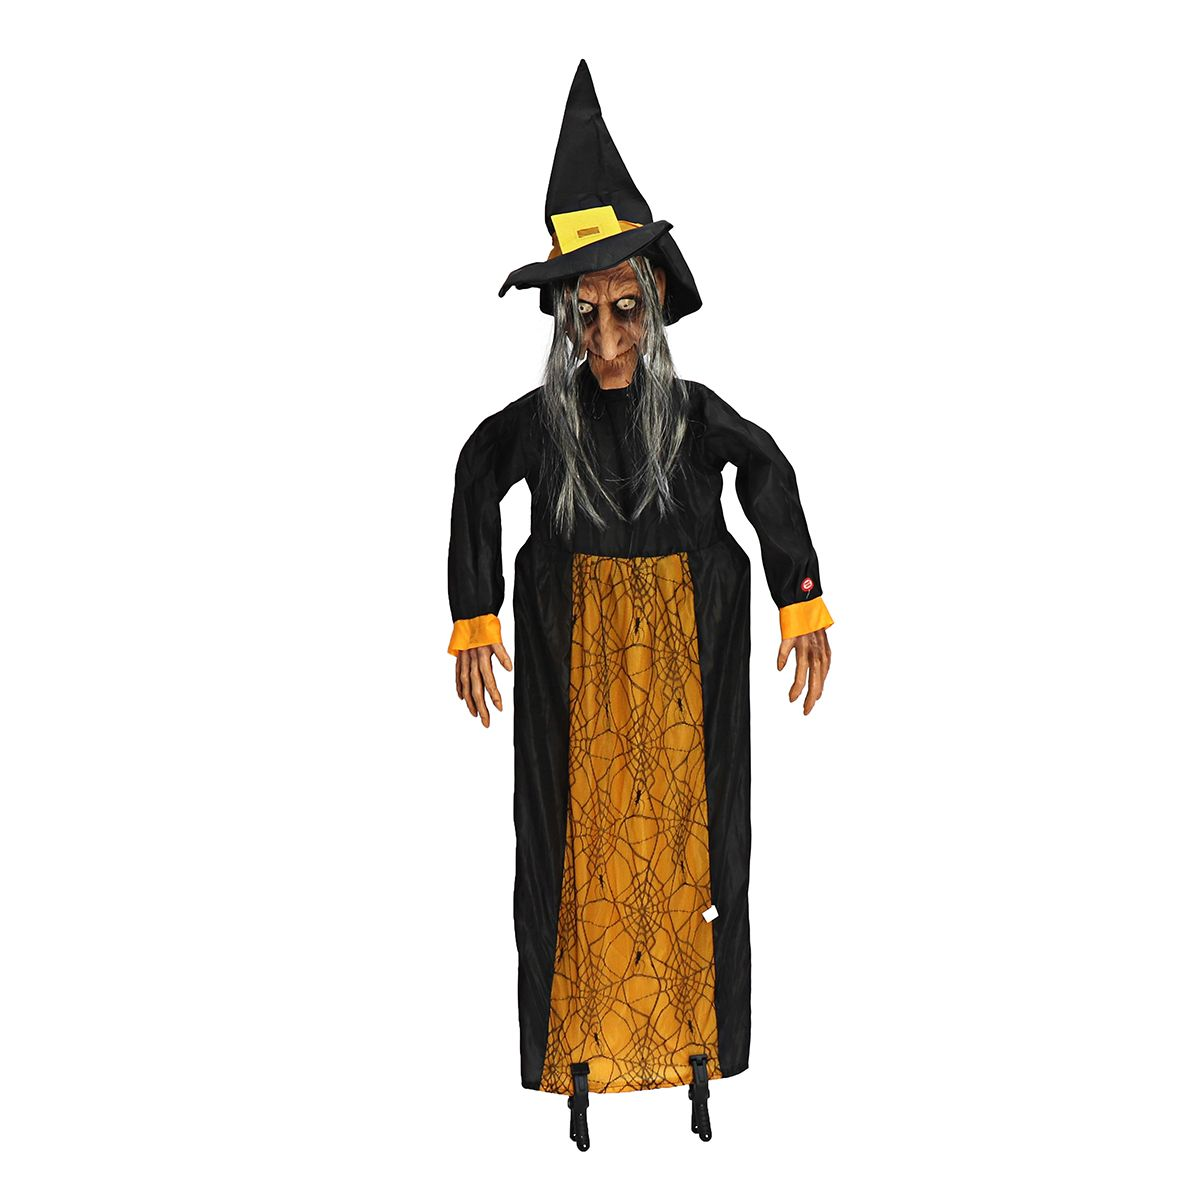 145cm Halloween Prop Electric Voice Control Ghost Fun Animated Speaking Witch Glowing Red Eyes Hanging Halloween Decoration Prop